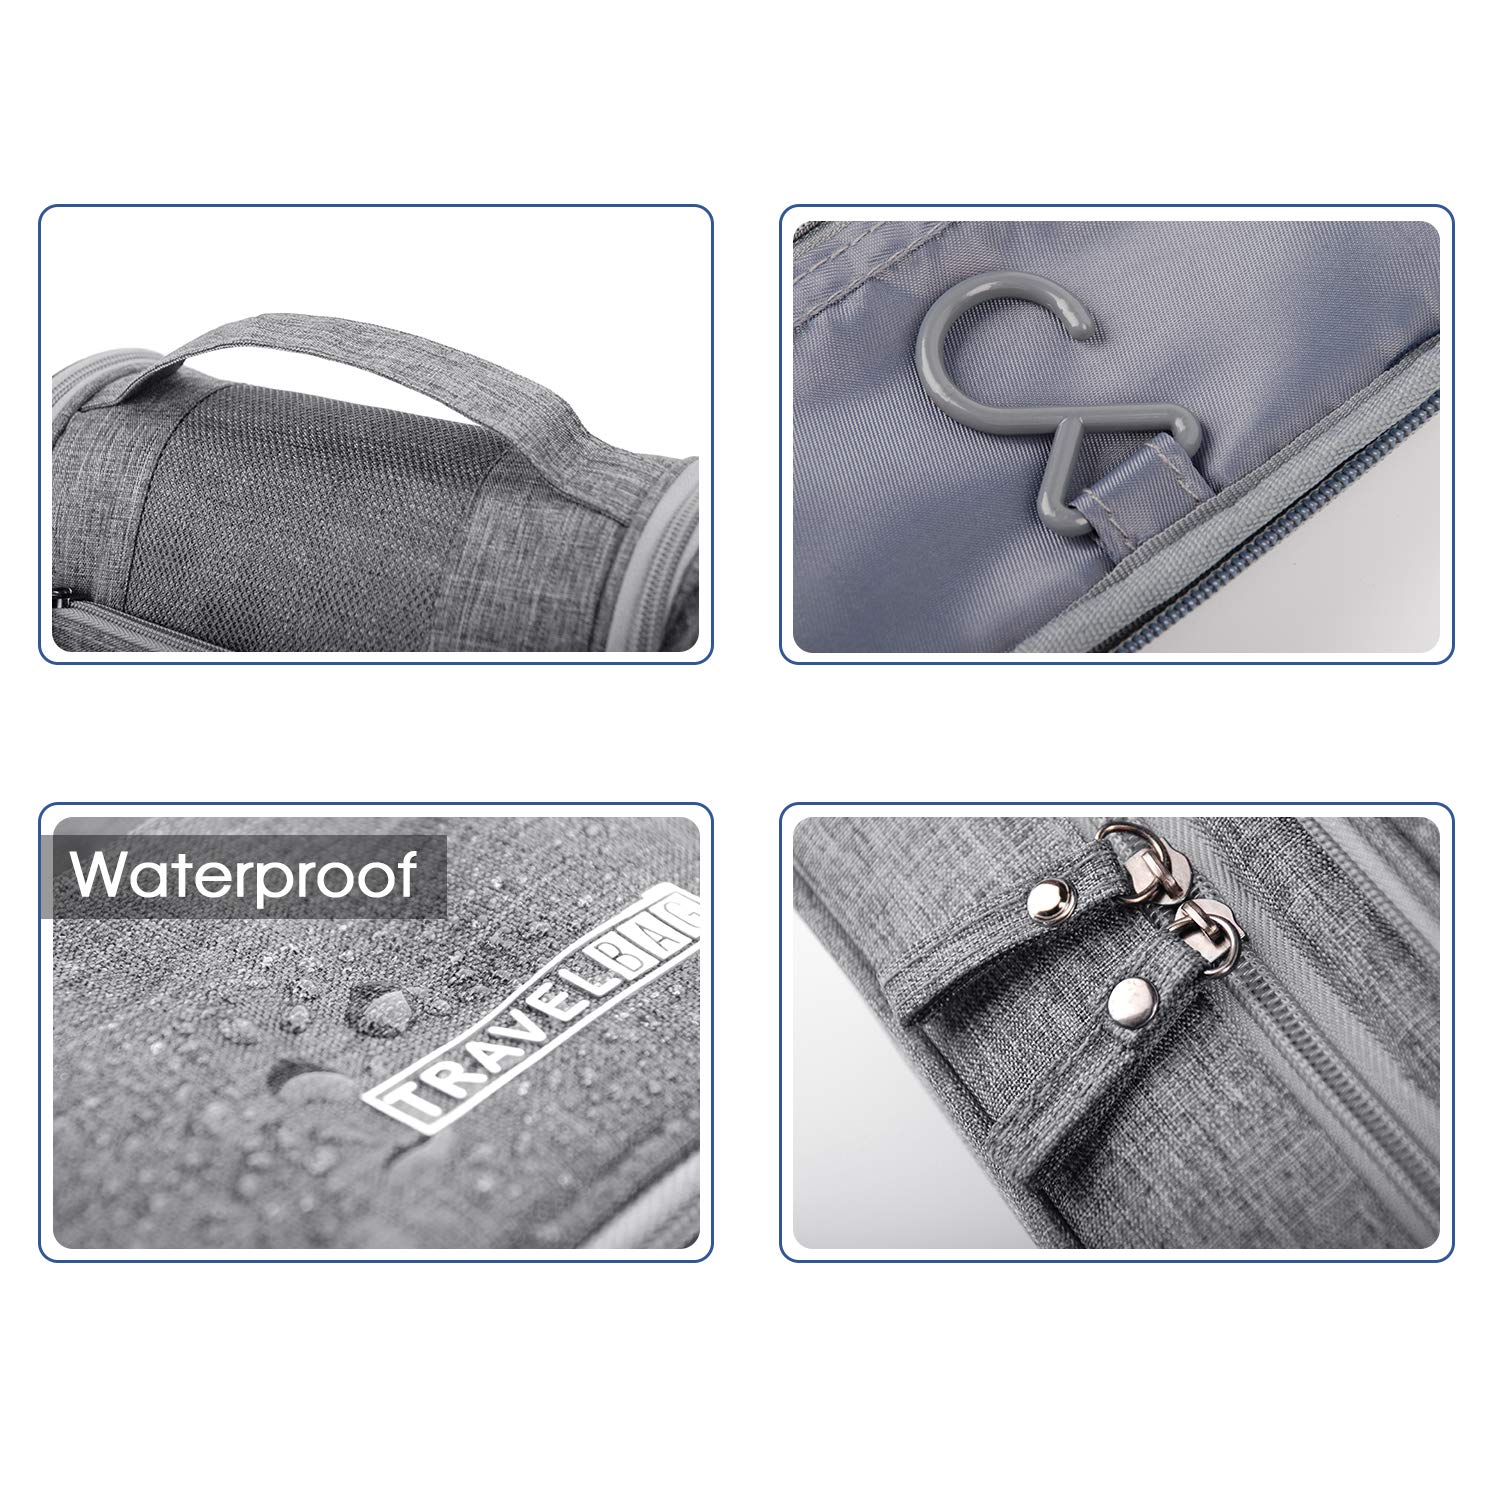 Narwey Travel Toiletry Bag Hanging Cosmetic Makeup Organizer Shaving Kit Waterproof for Men and Women by Narwey (Image #5)